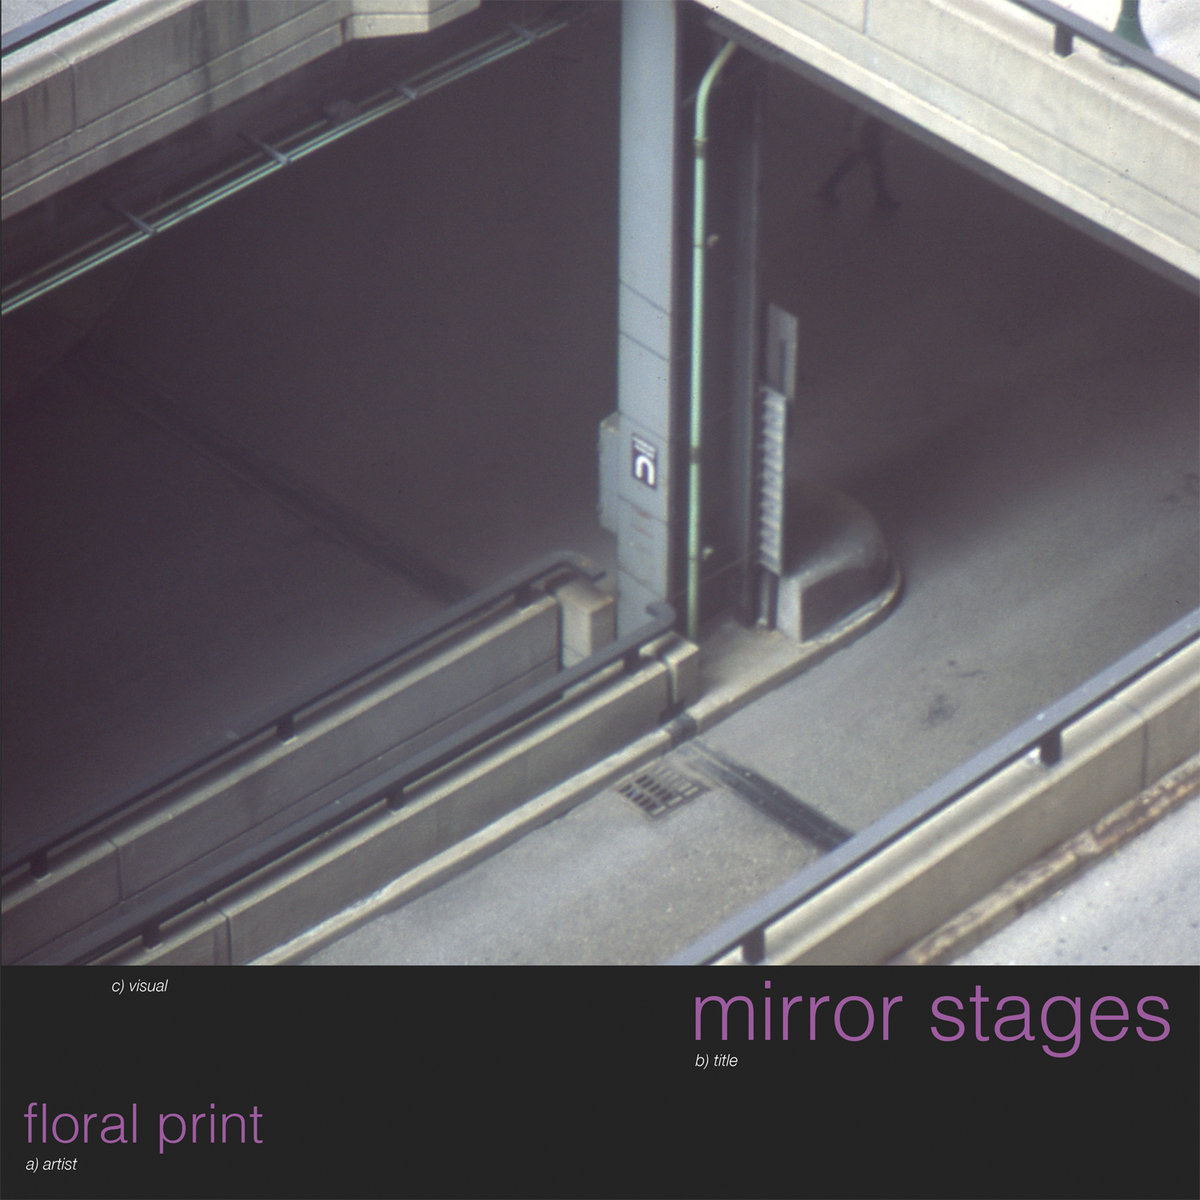 floral print mirror stages album art